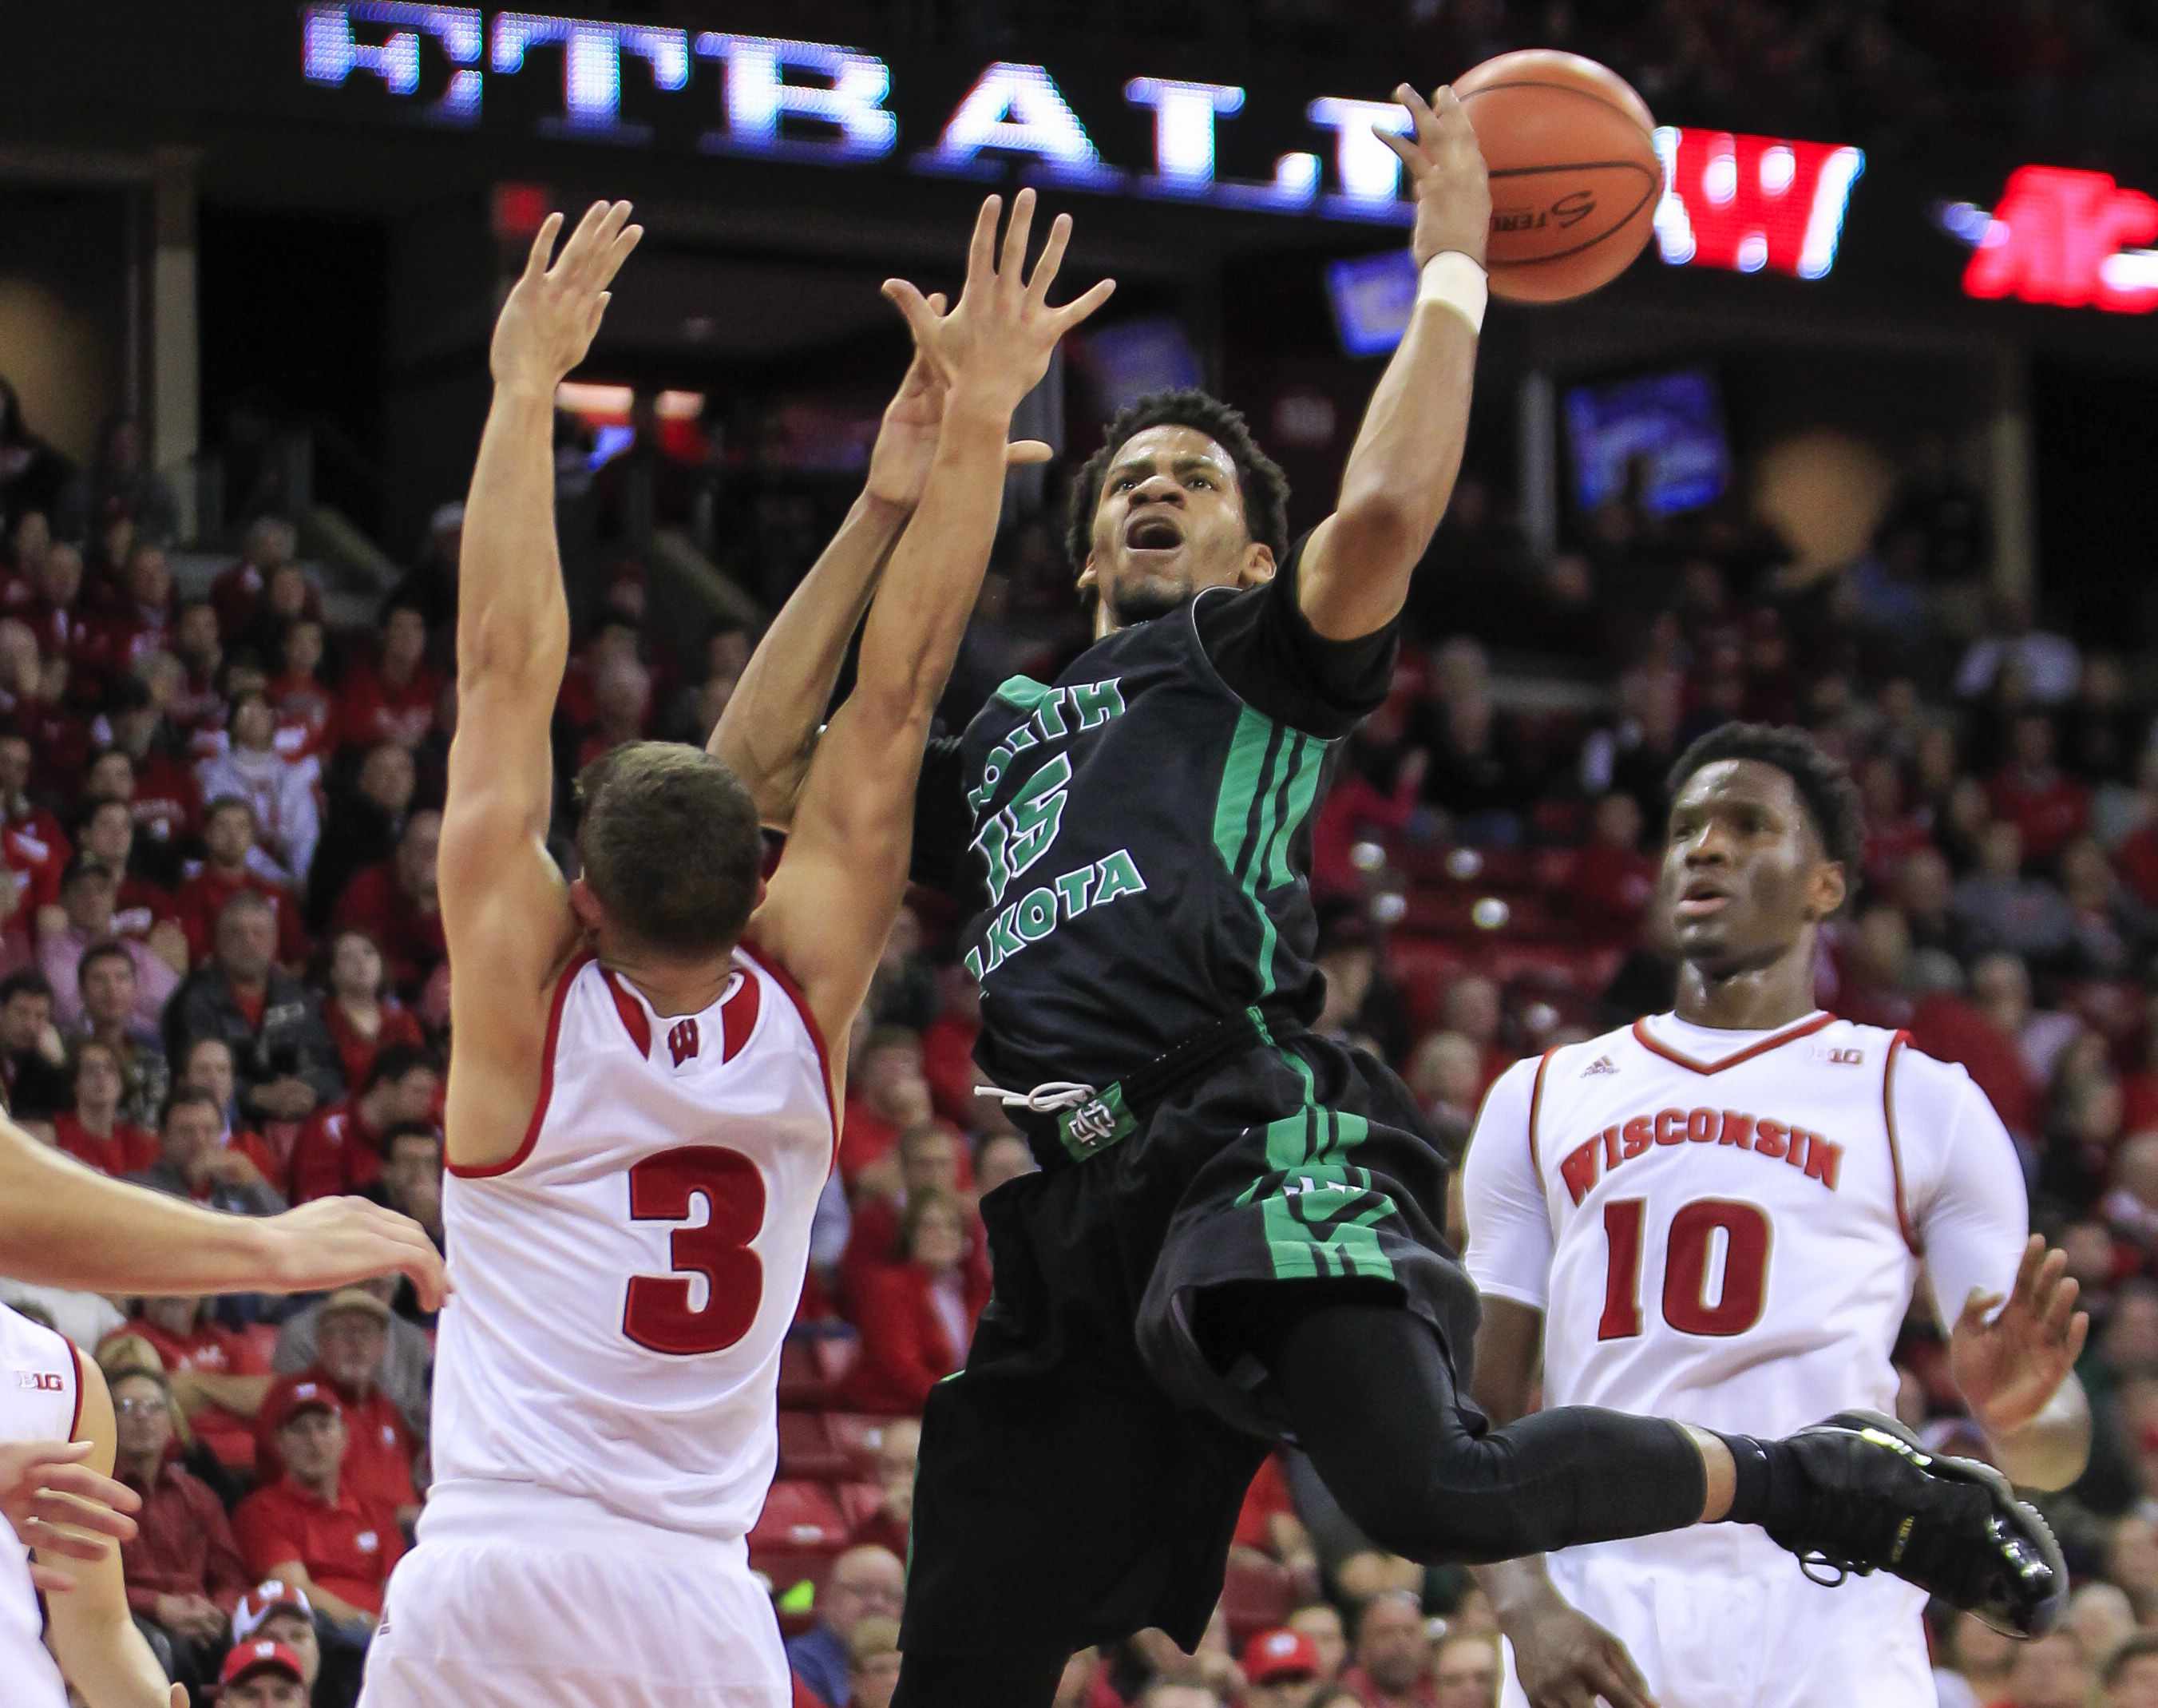 Wisconsin's Zak Showalter (3) blocks a shot by North Dakota's Cortez Seales (15) during the first half of an NCAA college basketball game Tuesday, Nov. 17, 2015, in Madison, Wis. (AP Photo/Andy Manis)